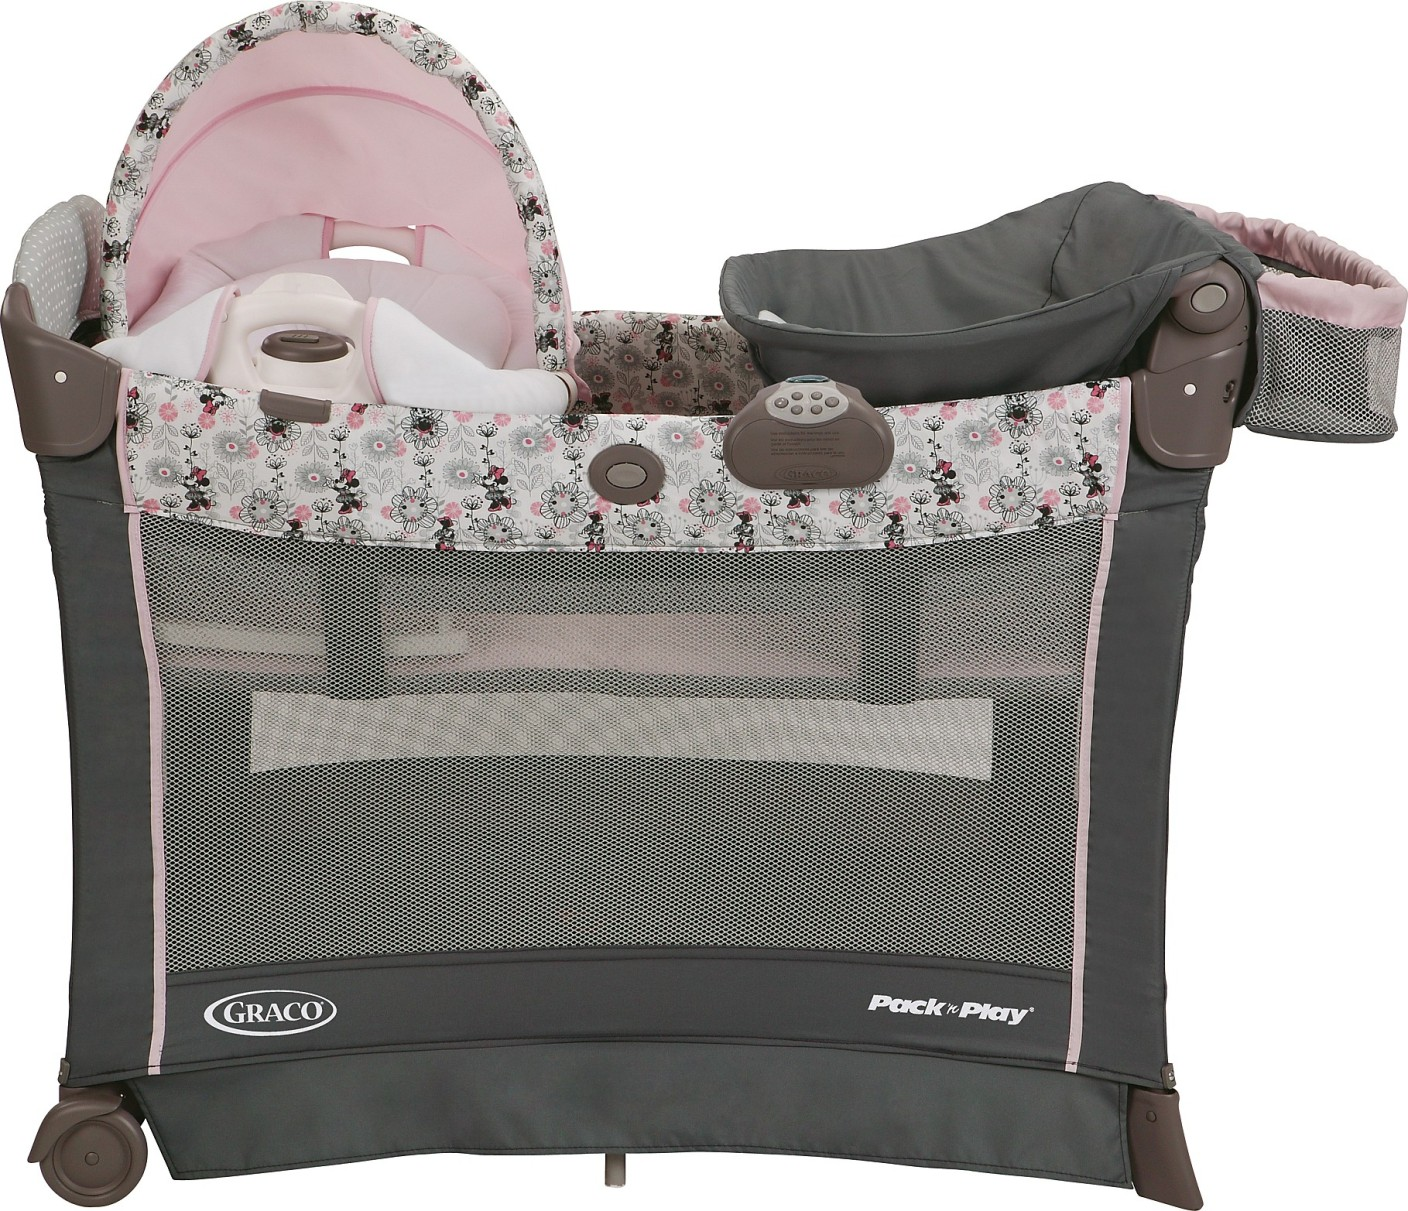 how to pack graco pack n play with bassinet